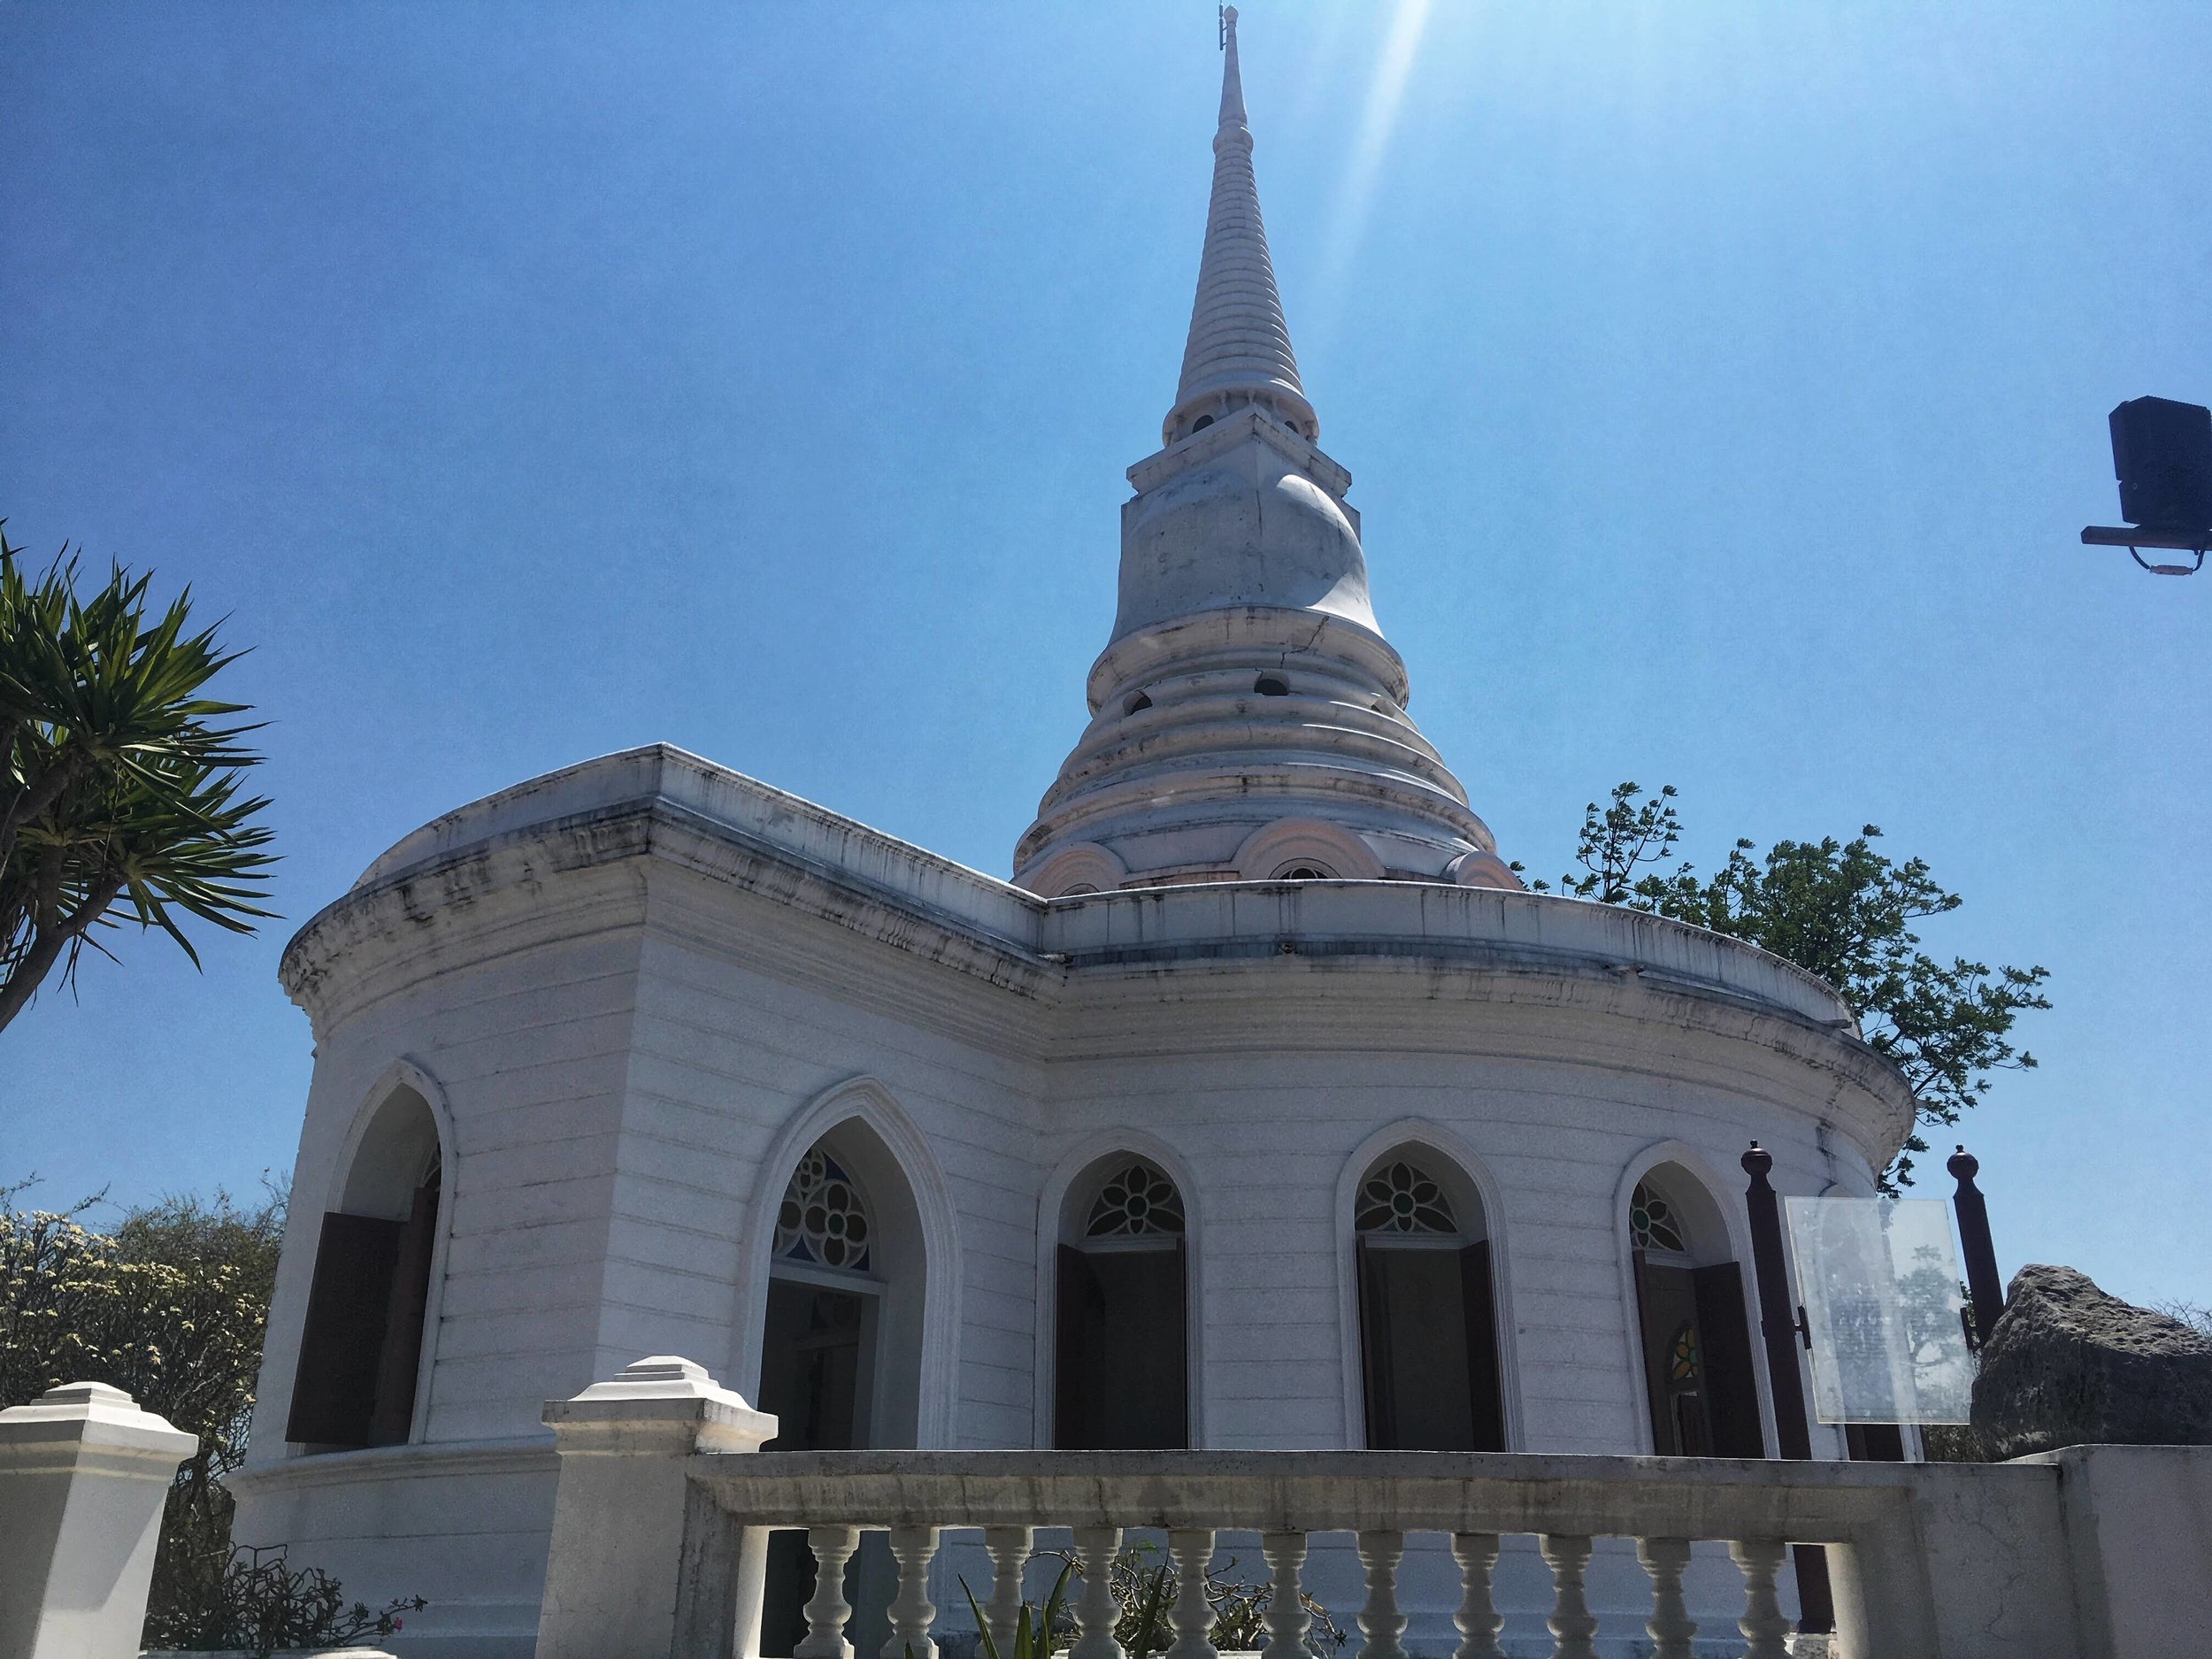 a western-style Buddhist temple on Koh Sichang Island was designed to look like a church